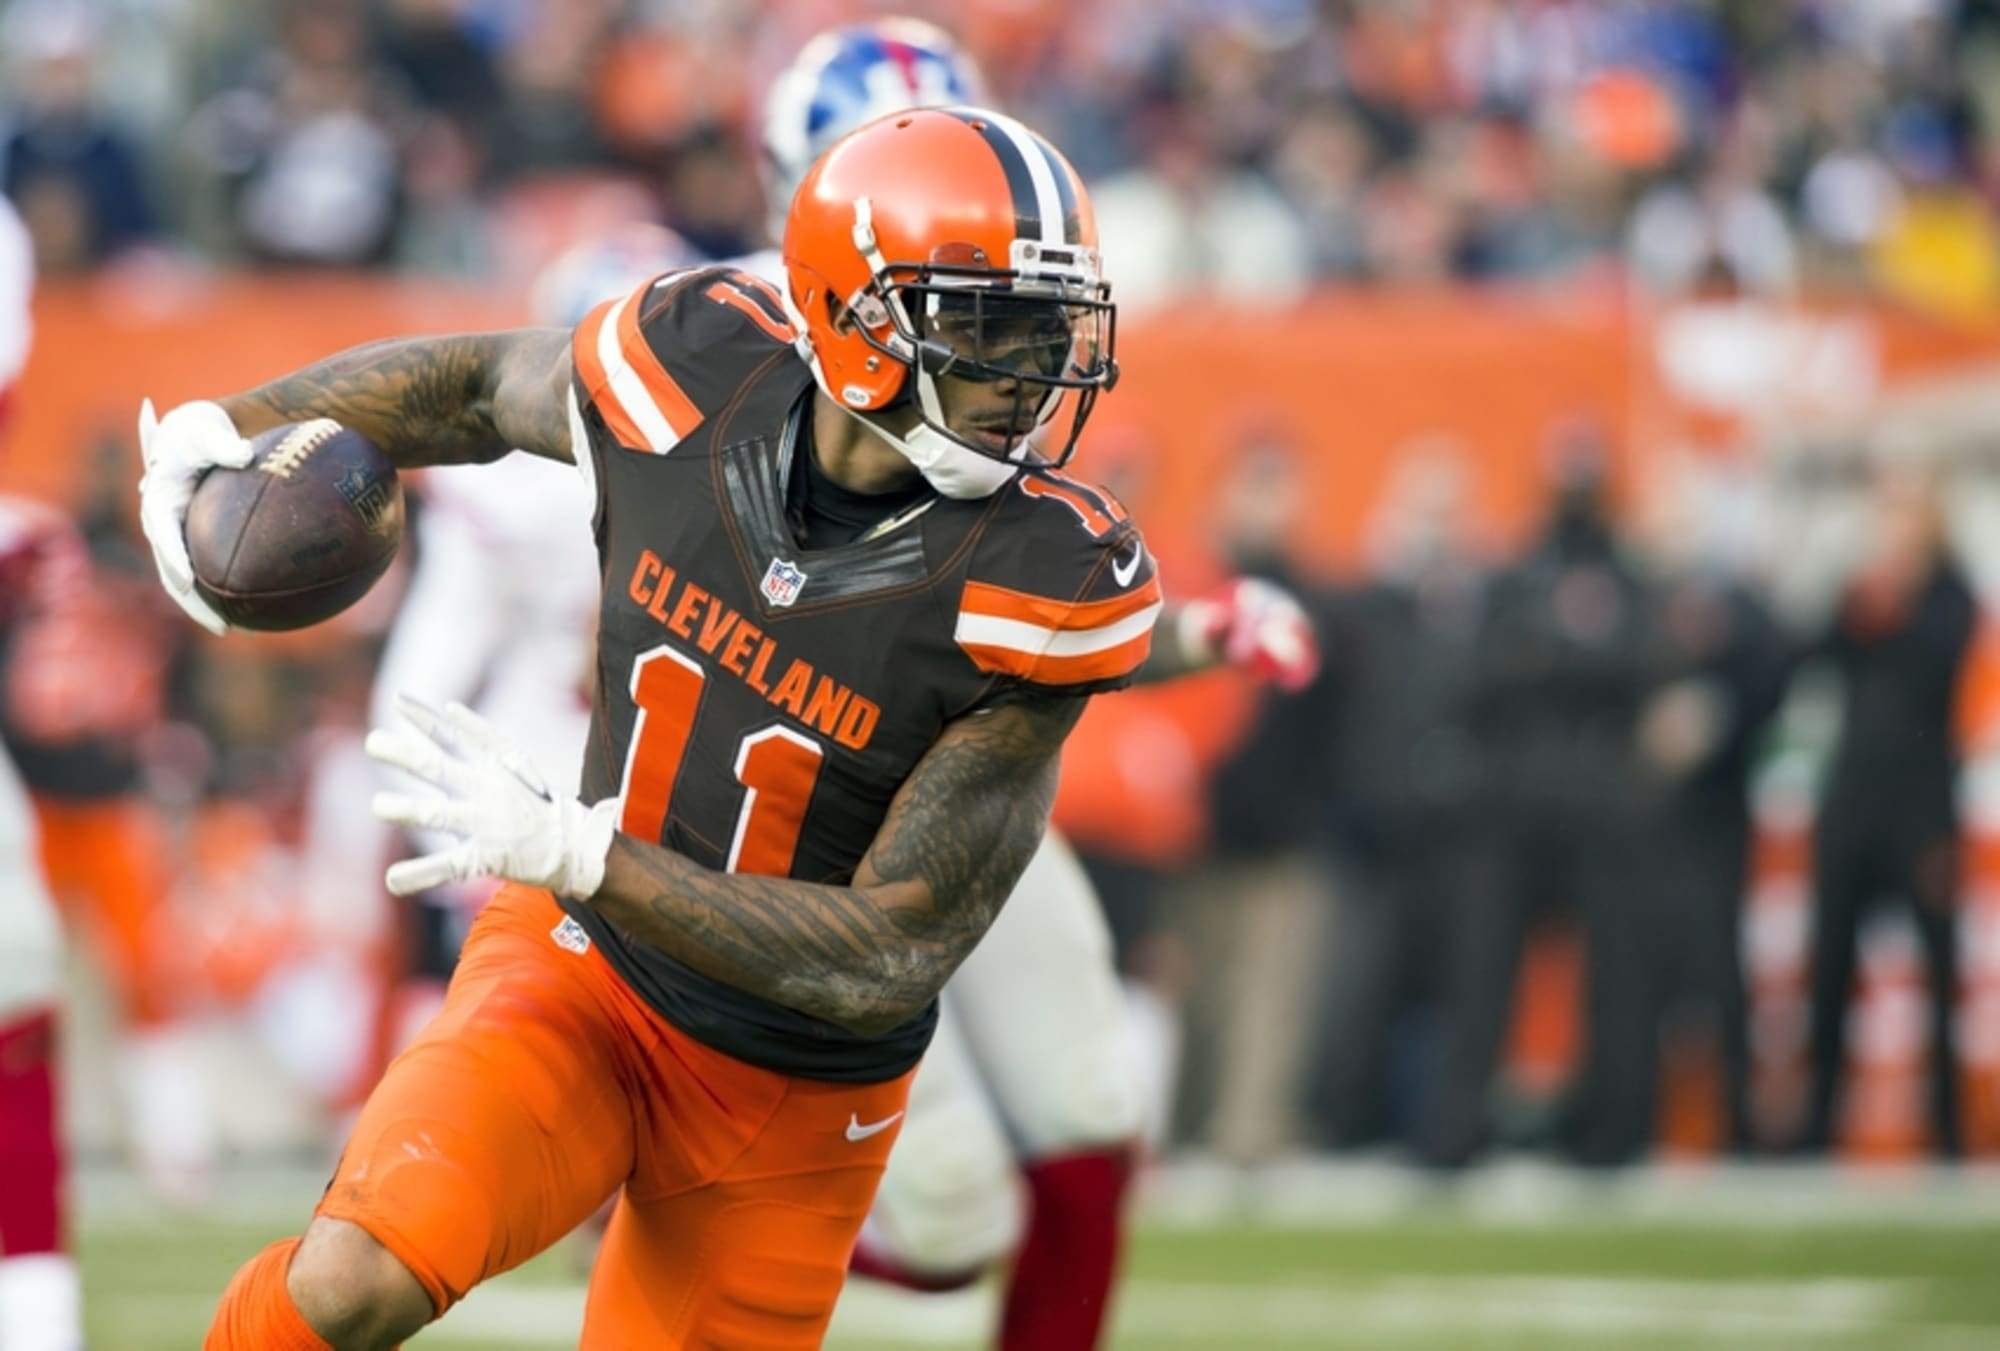 Cleveland Browns Free Agents: 5 Landing Spots For Terrelle Pryor